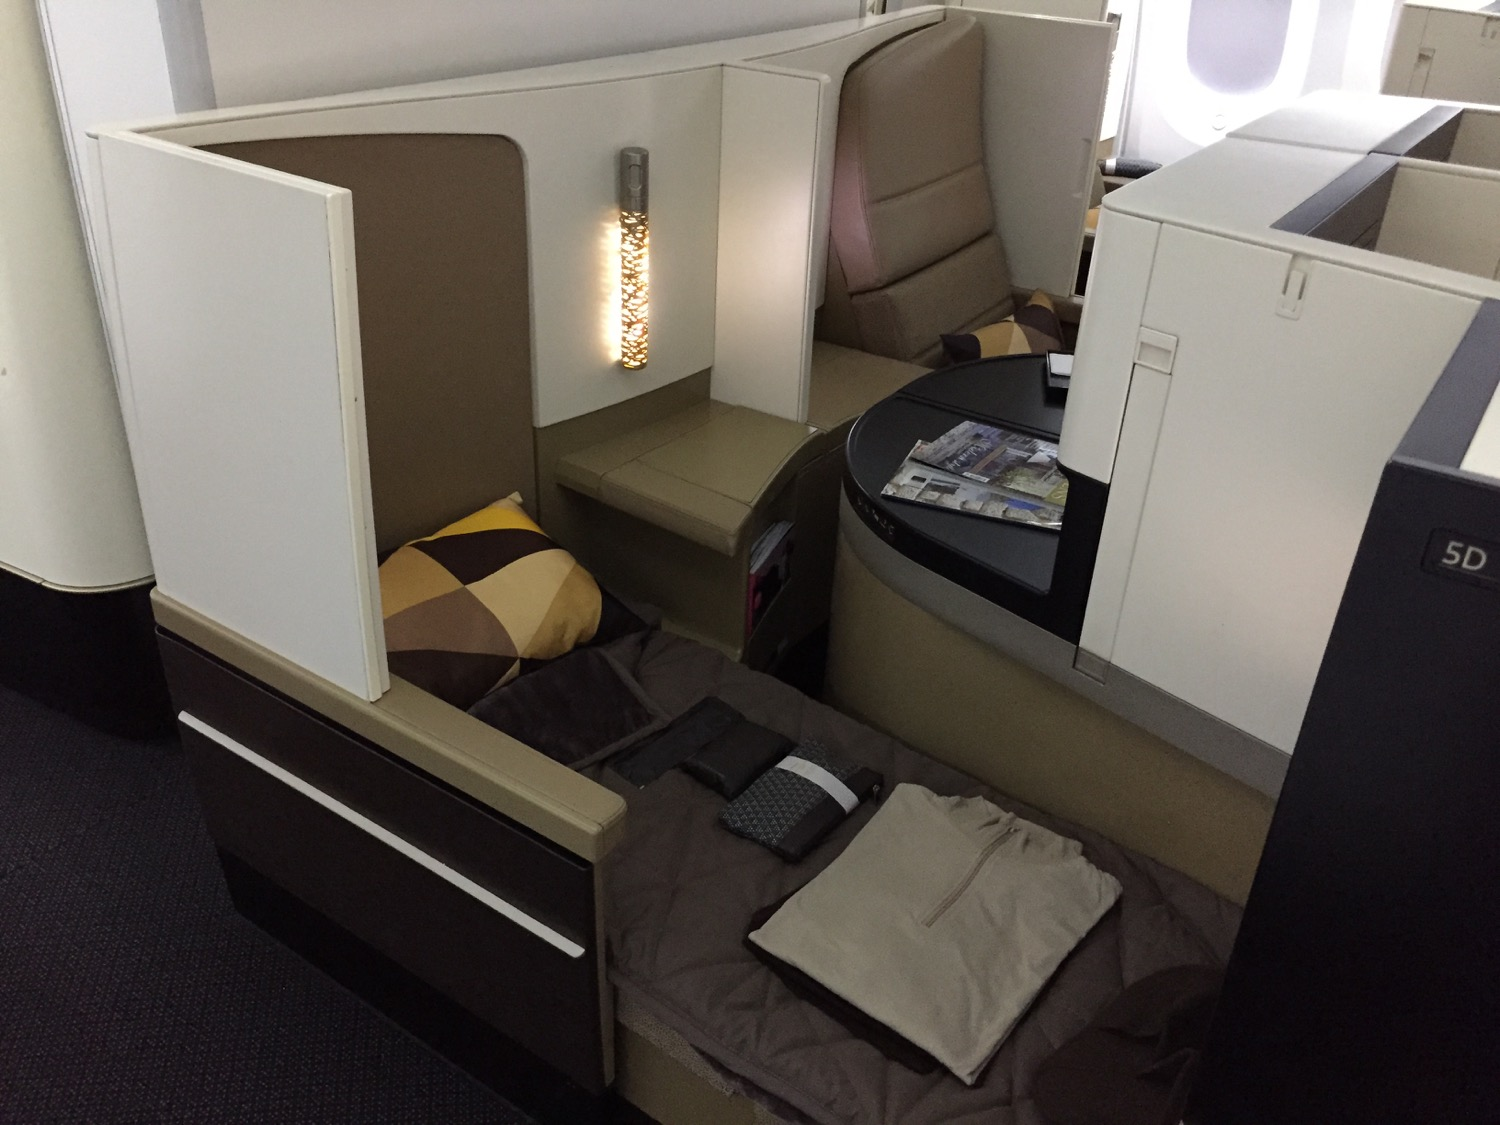 Etihad airways business class nach australien unter euro for Wohnlandschaft unter 600 euro